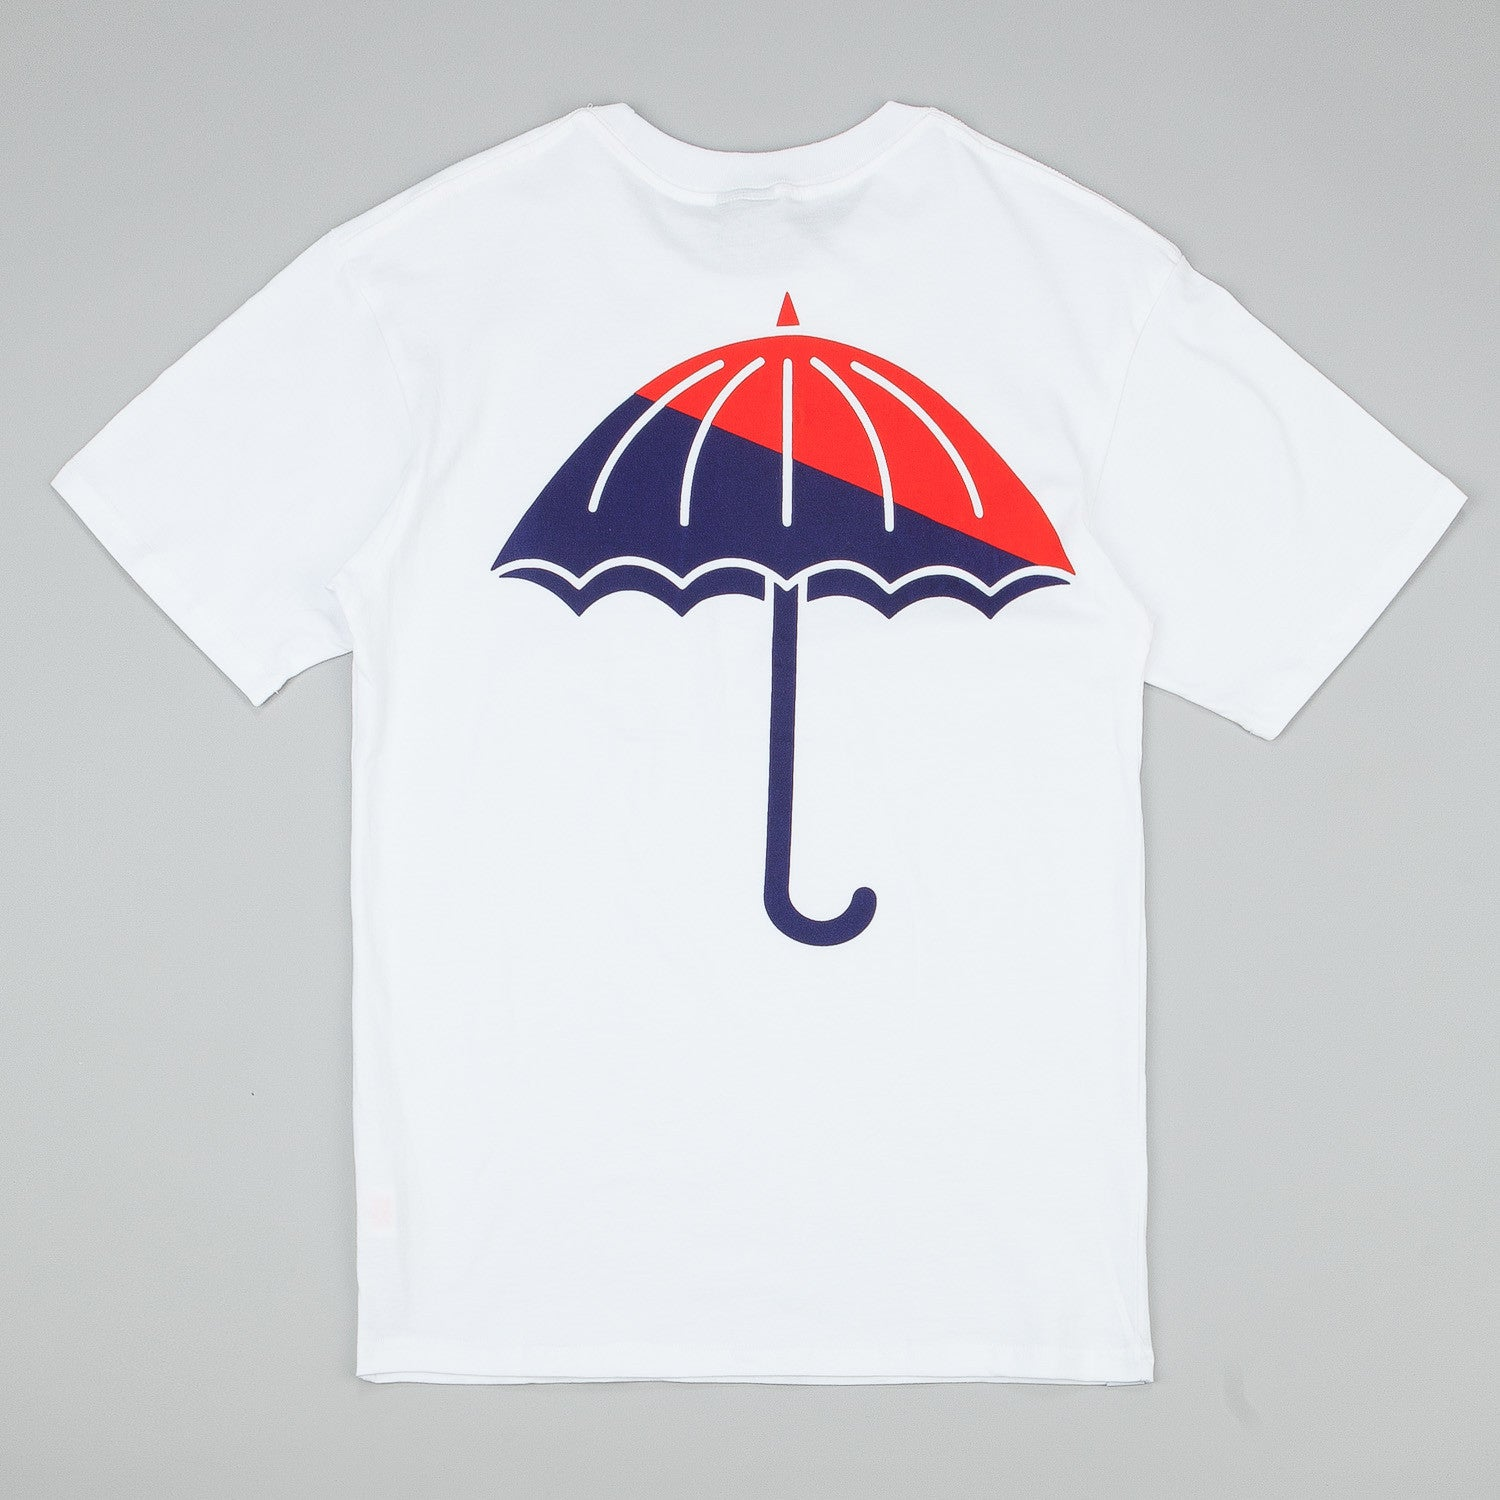 Helas Umbrella T Shirt - White